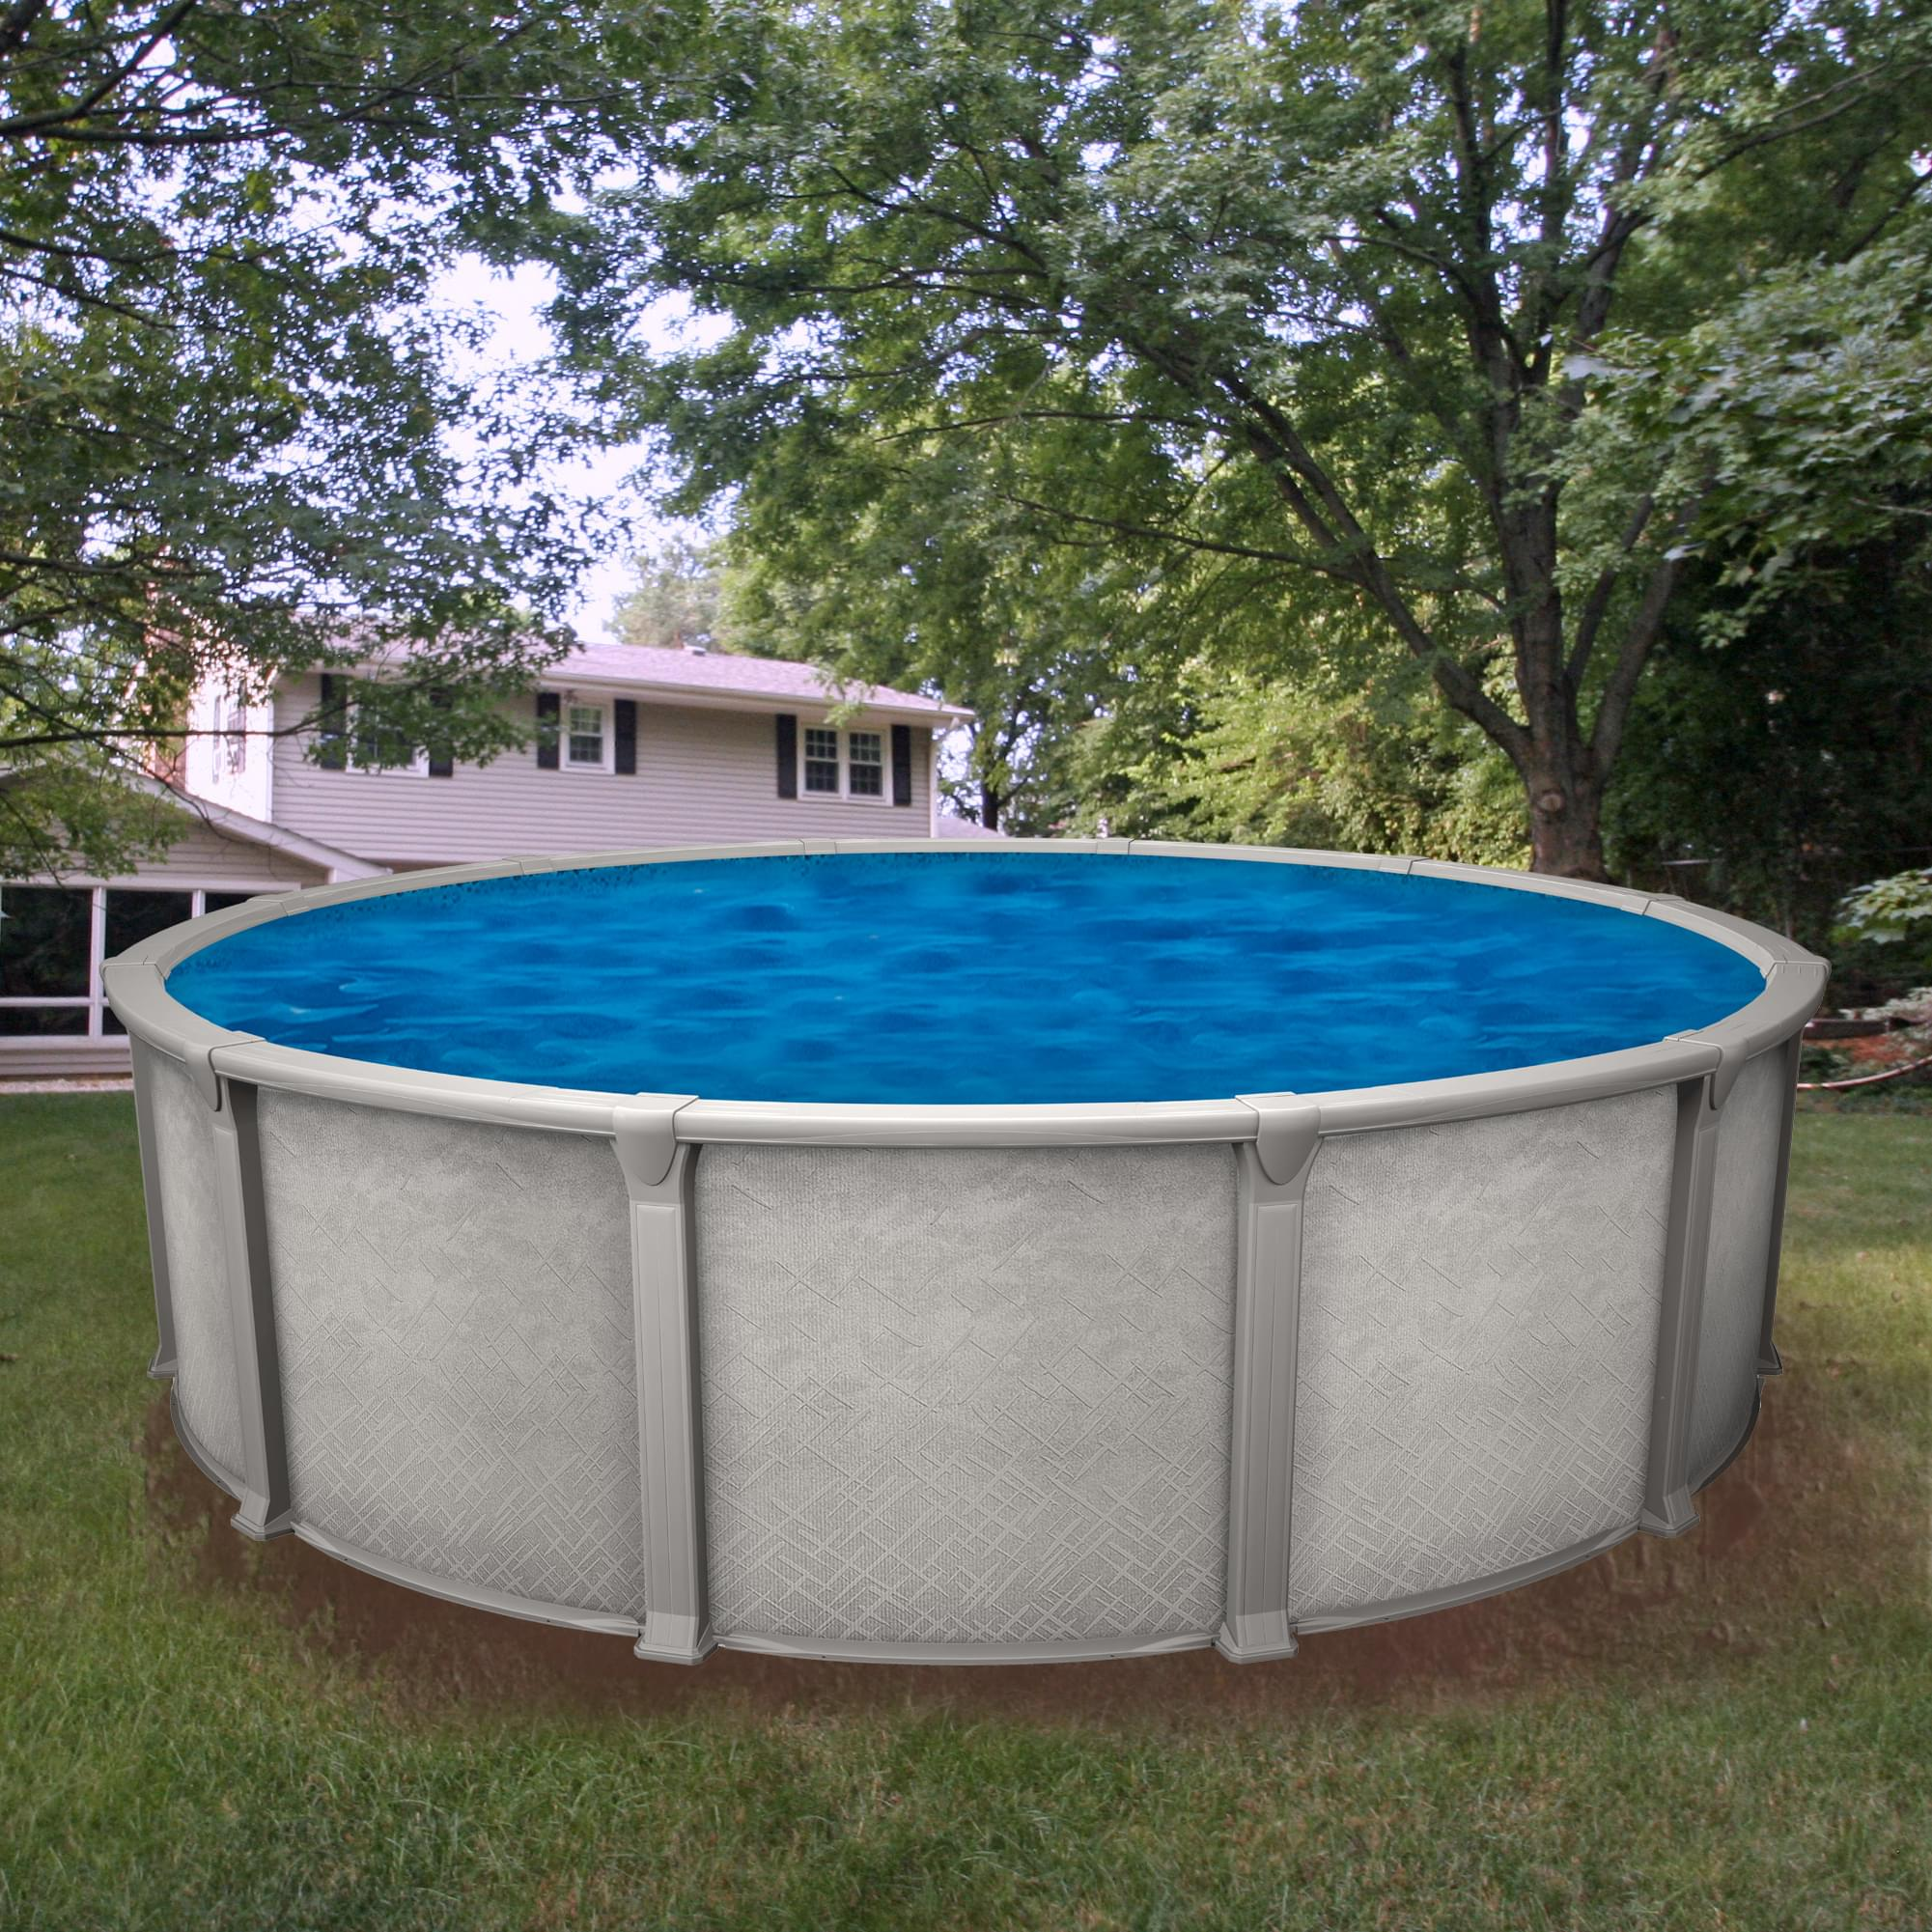 Galaxy 21 ft Round Above Ground Pool